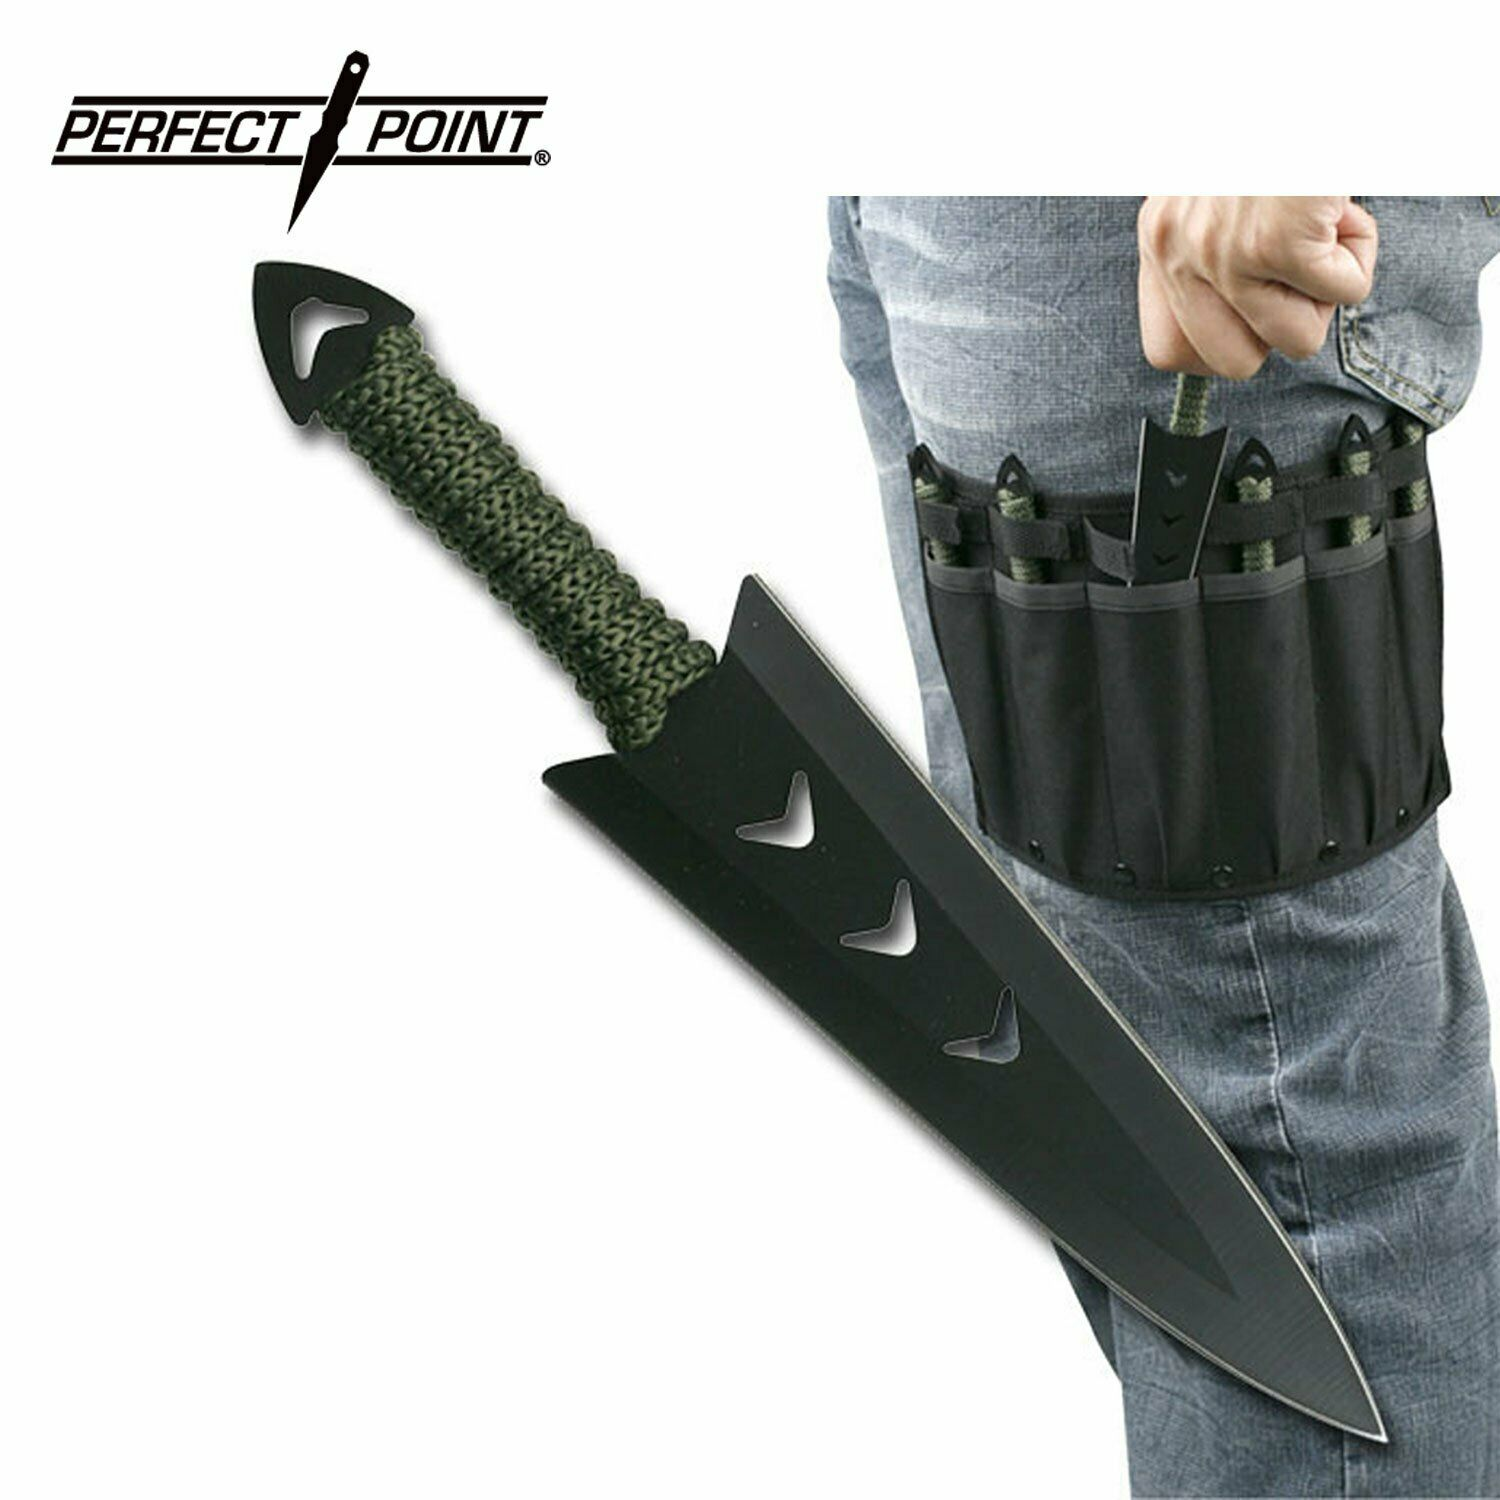 6 PC SET Perfect Point Throwing Knives 6.5